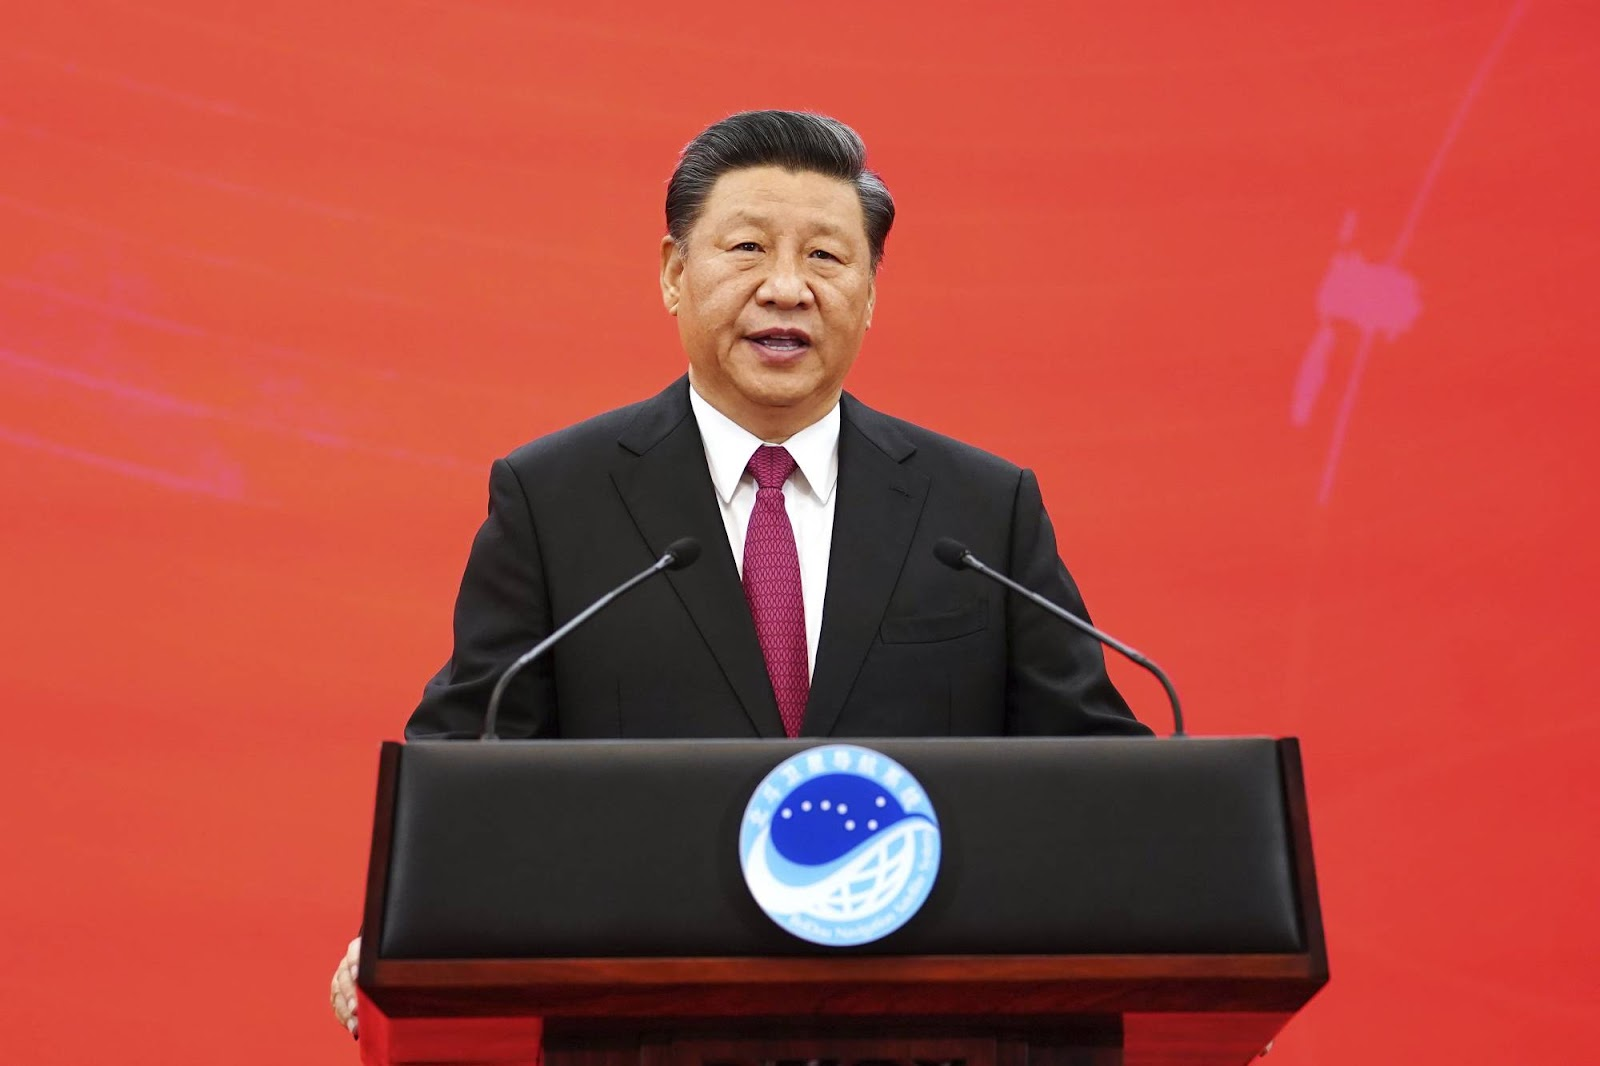 Chinese President Xi Jinping speaks during a ceremony on July 31. | Xinhua / via AP